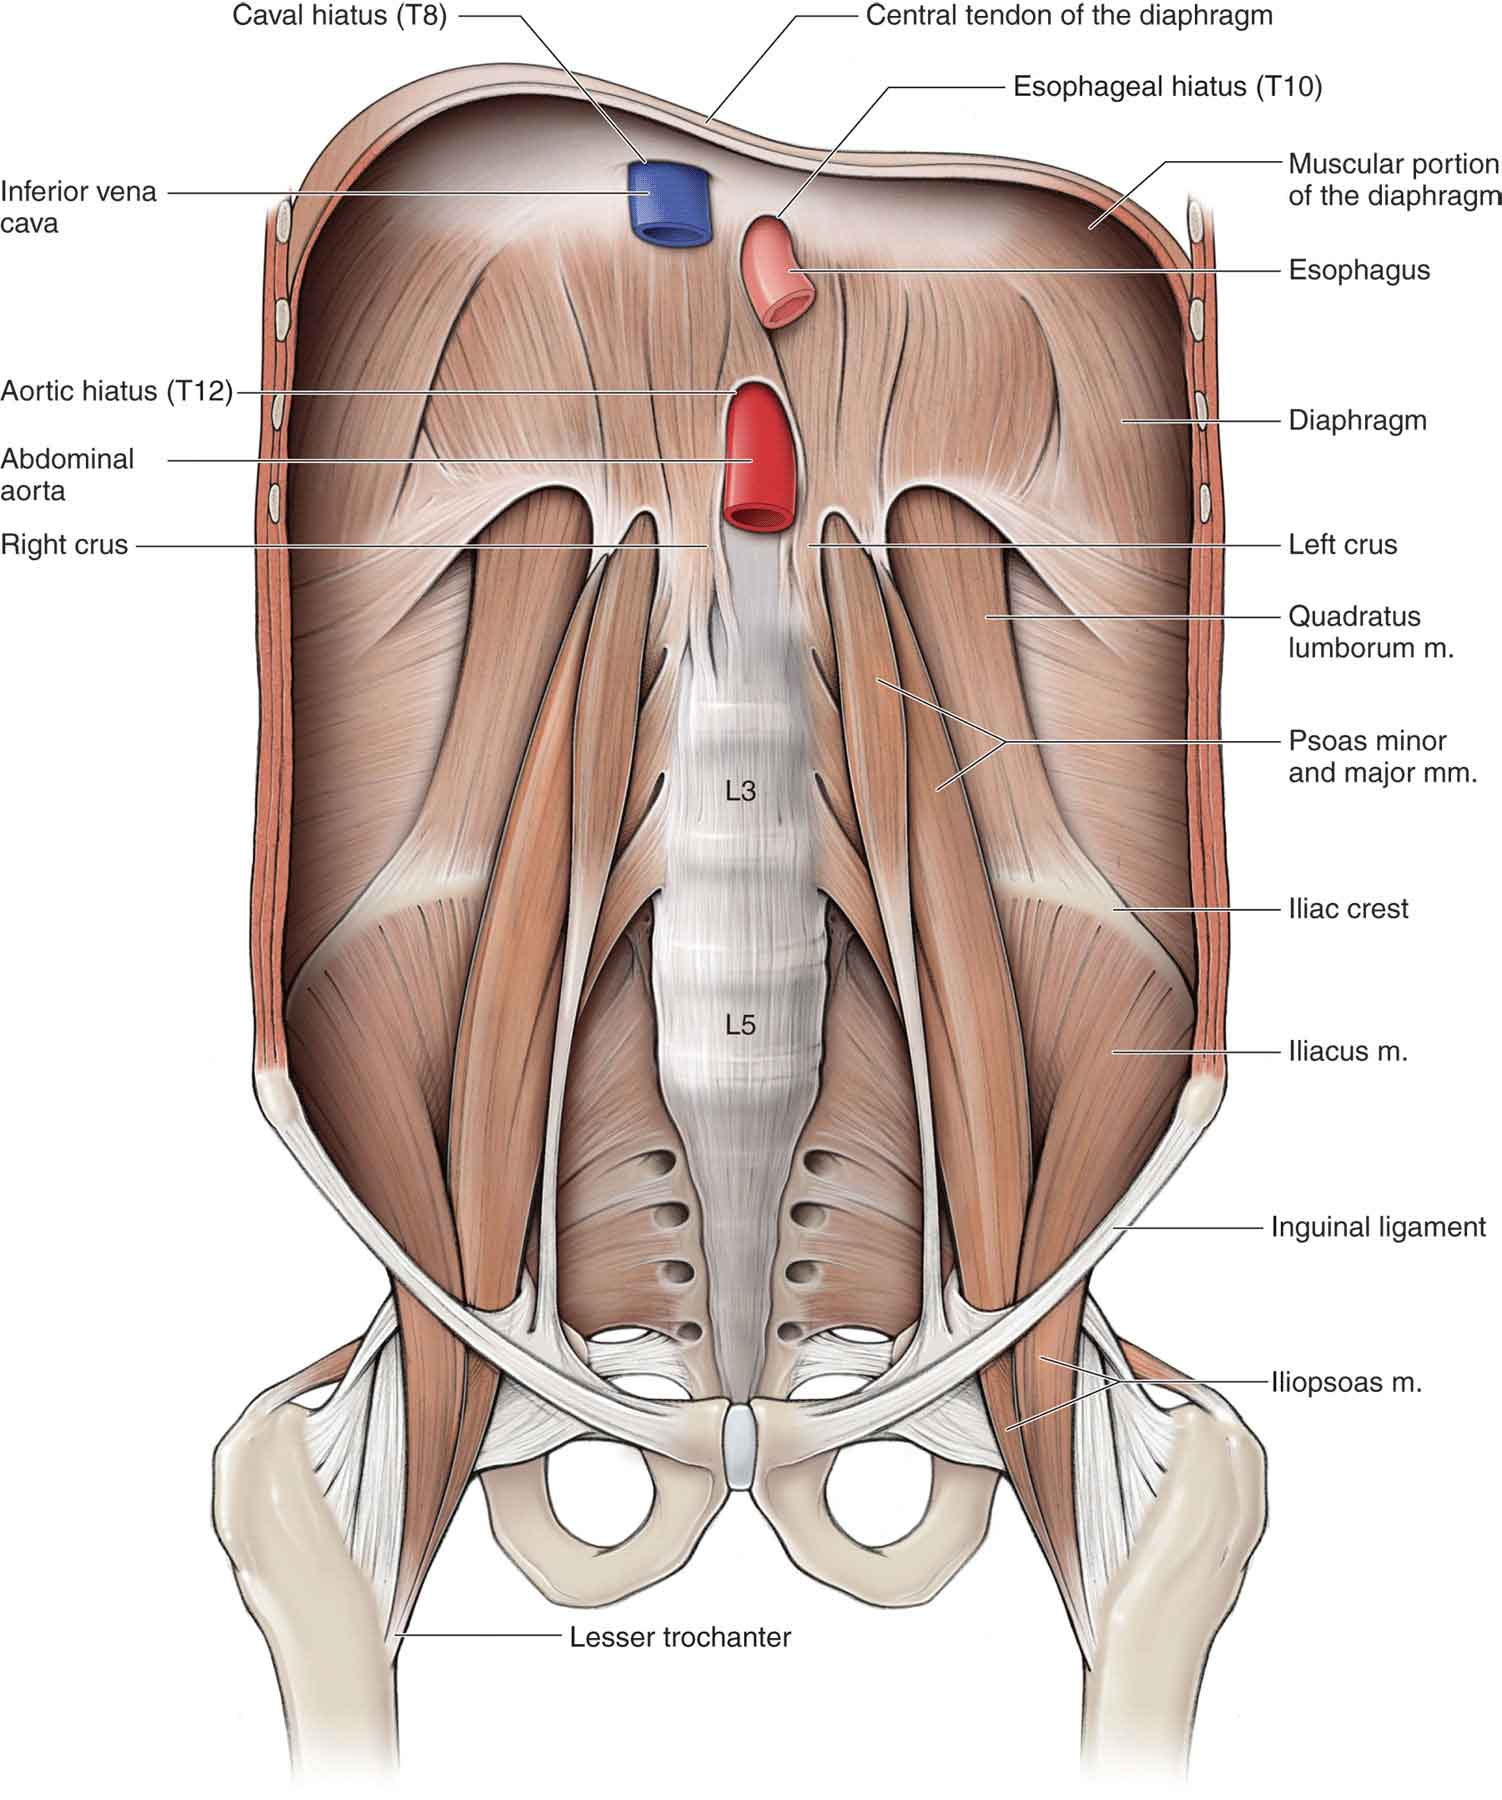 Muscle anatomy of the hip